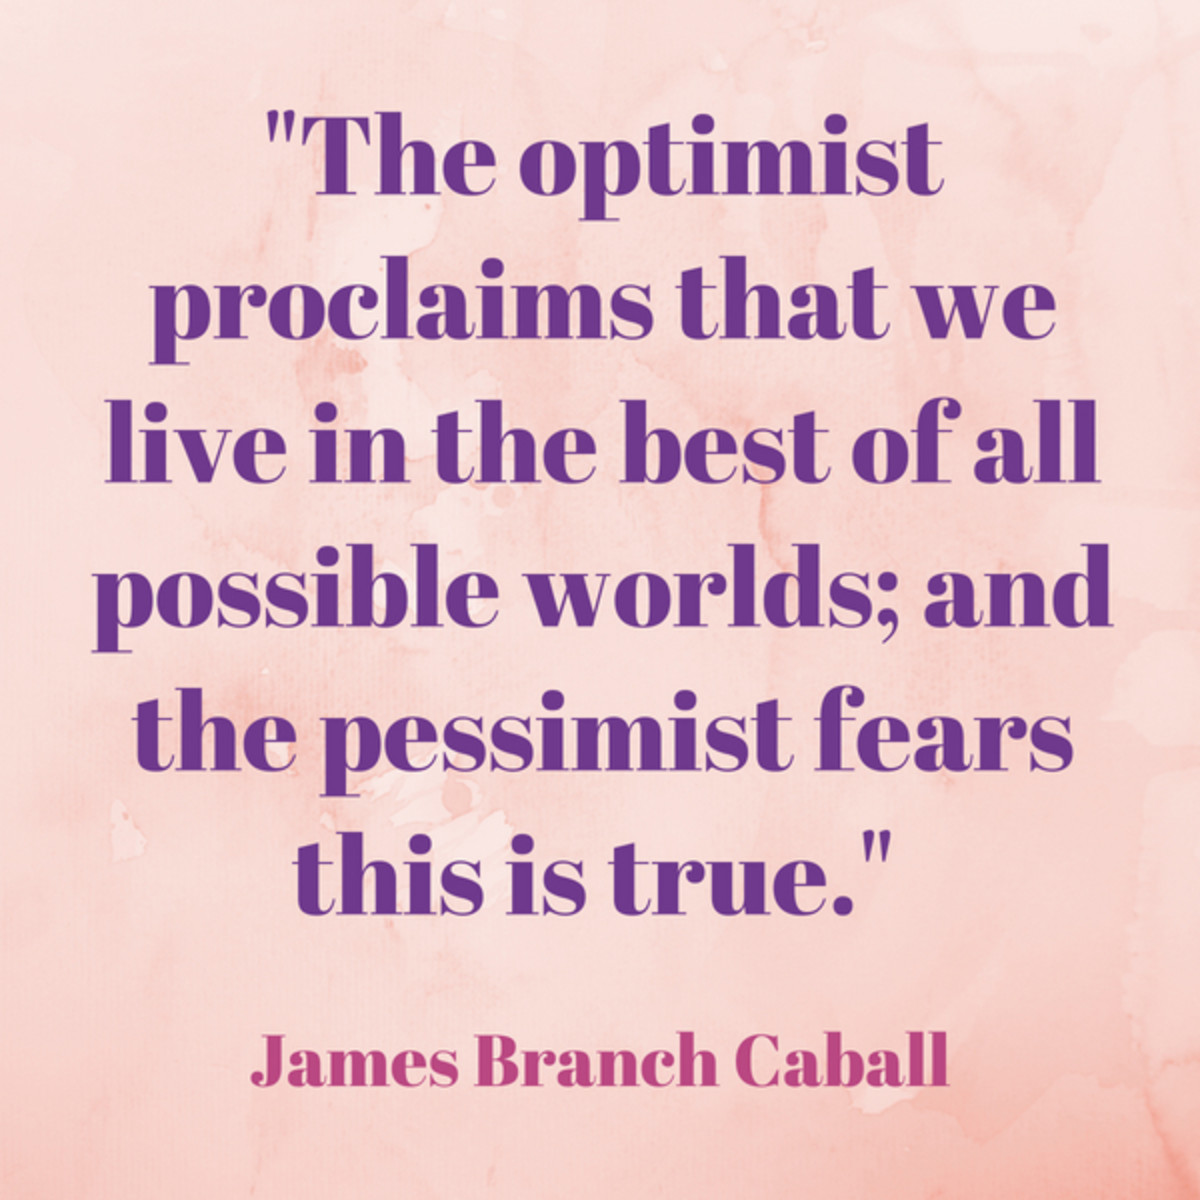 inspirational-quotes-about-hope-and-optimism